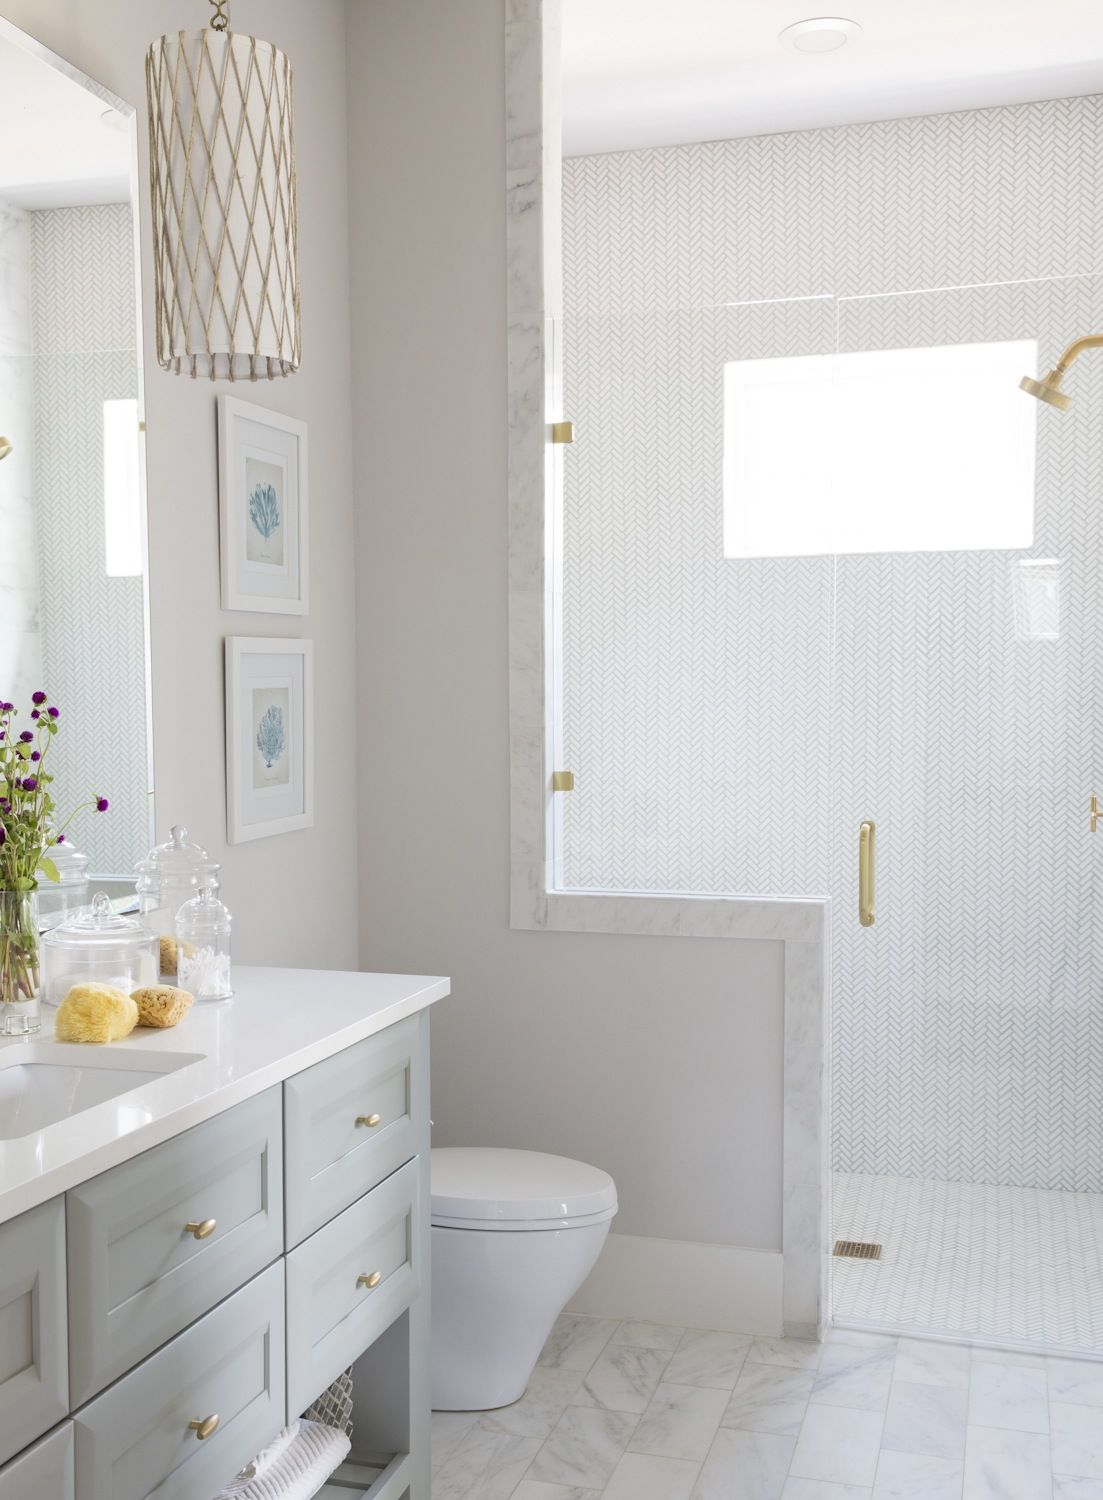 Dering Hall   Bathrooms   Pinterest   Hall, Annie and Apartments